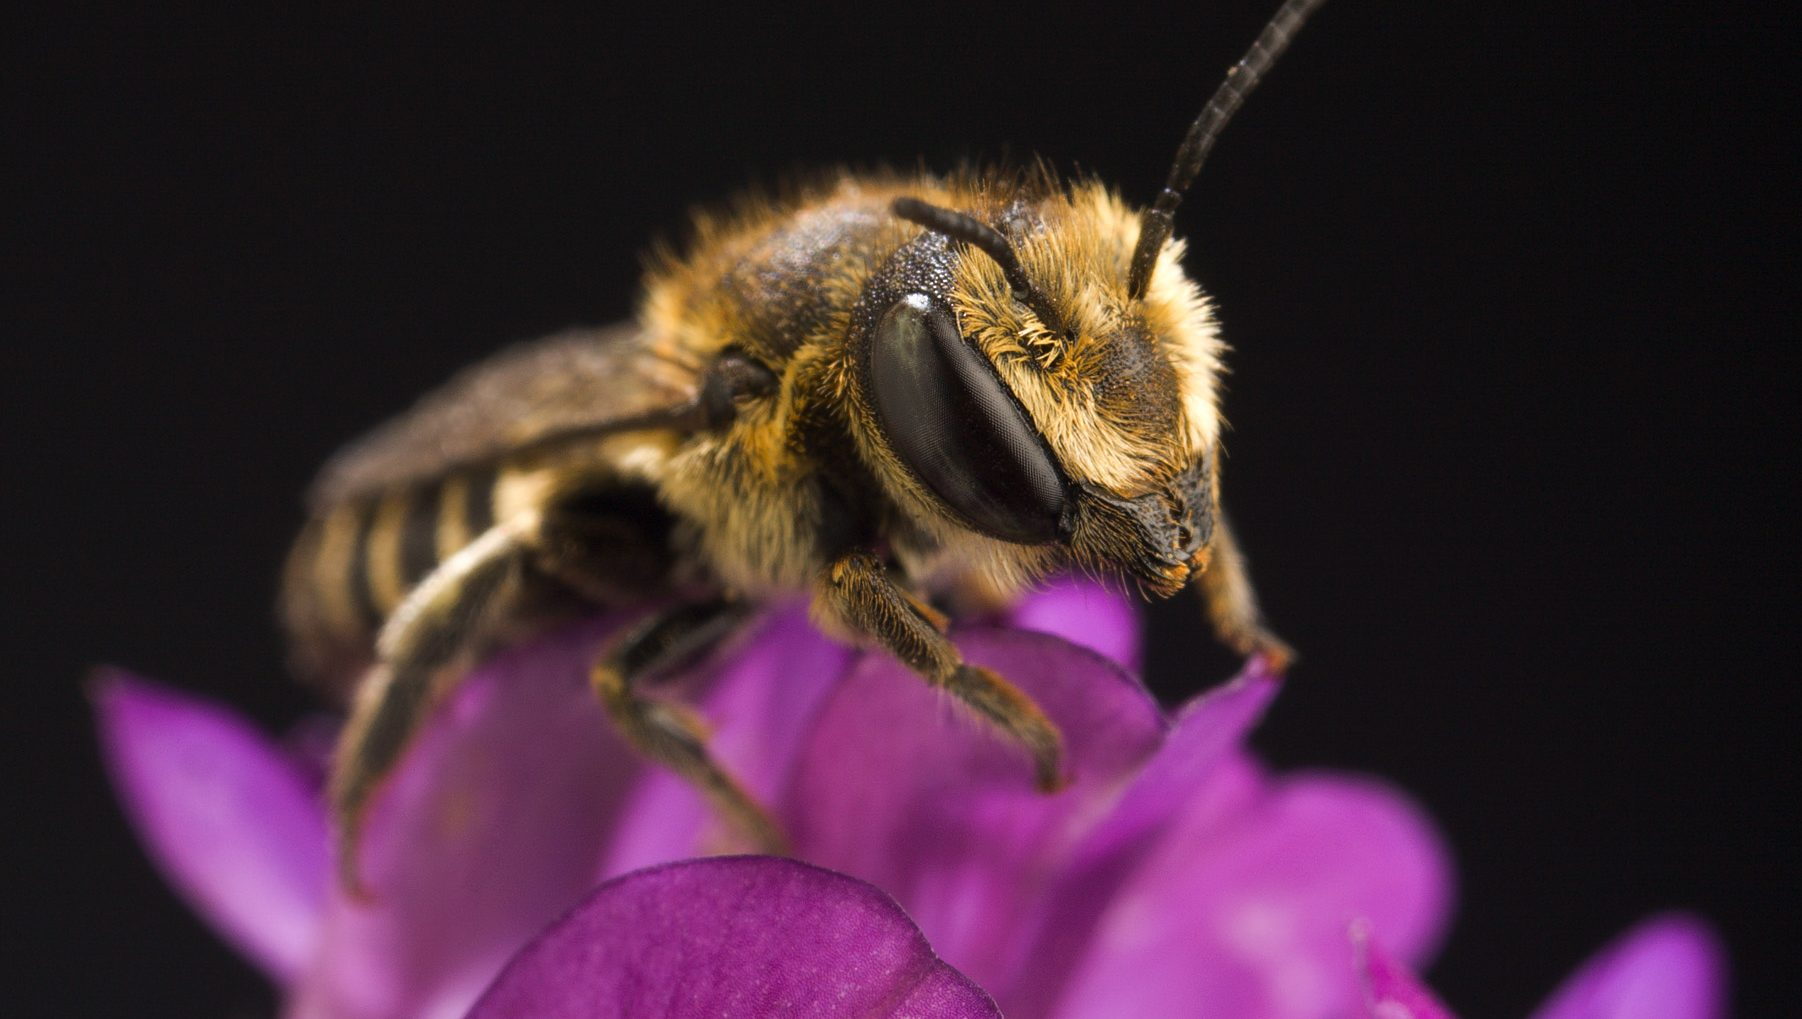 Image: Alfalfa Leafcutter Bee sitting on an alfalfa flower